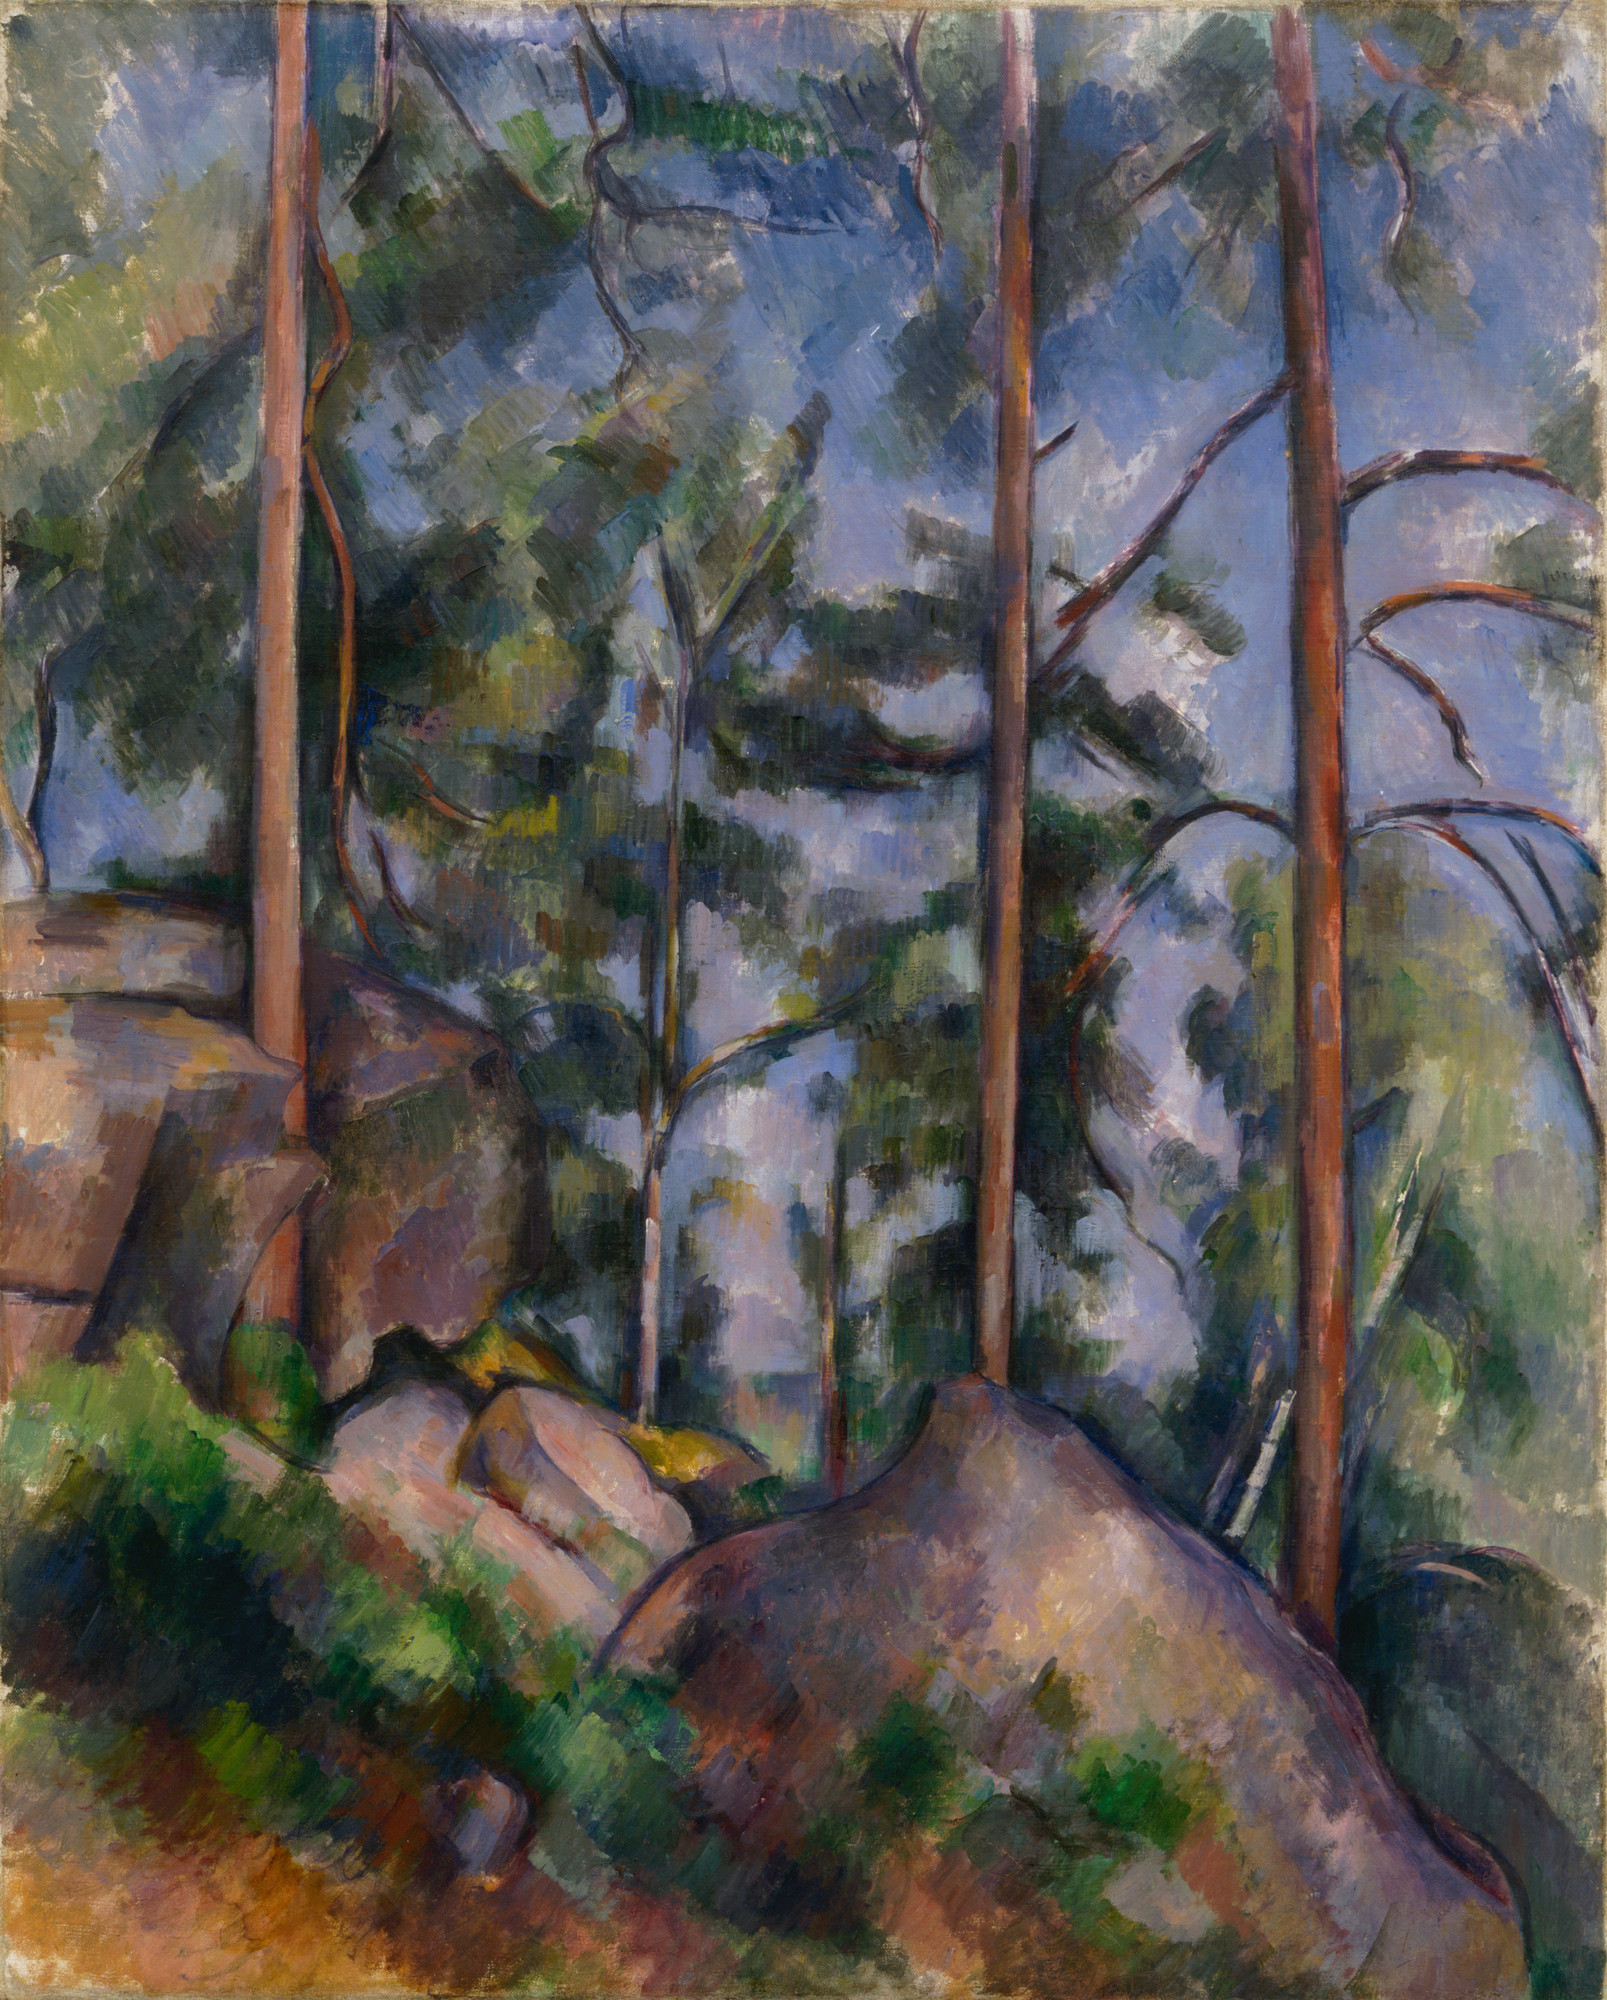 "Paul Cézanne. Pines and Rocks (Fontainebleau?). 1897. Oil on canvas, 32 x 25 3/4"" (81.3 x 65.4 cm). Lillie P. Bliss Collection."